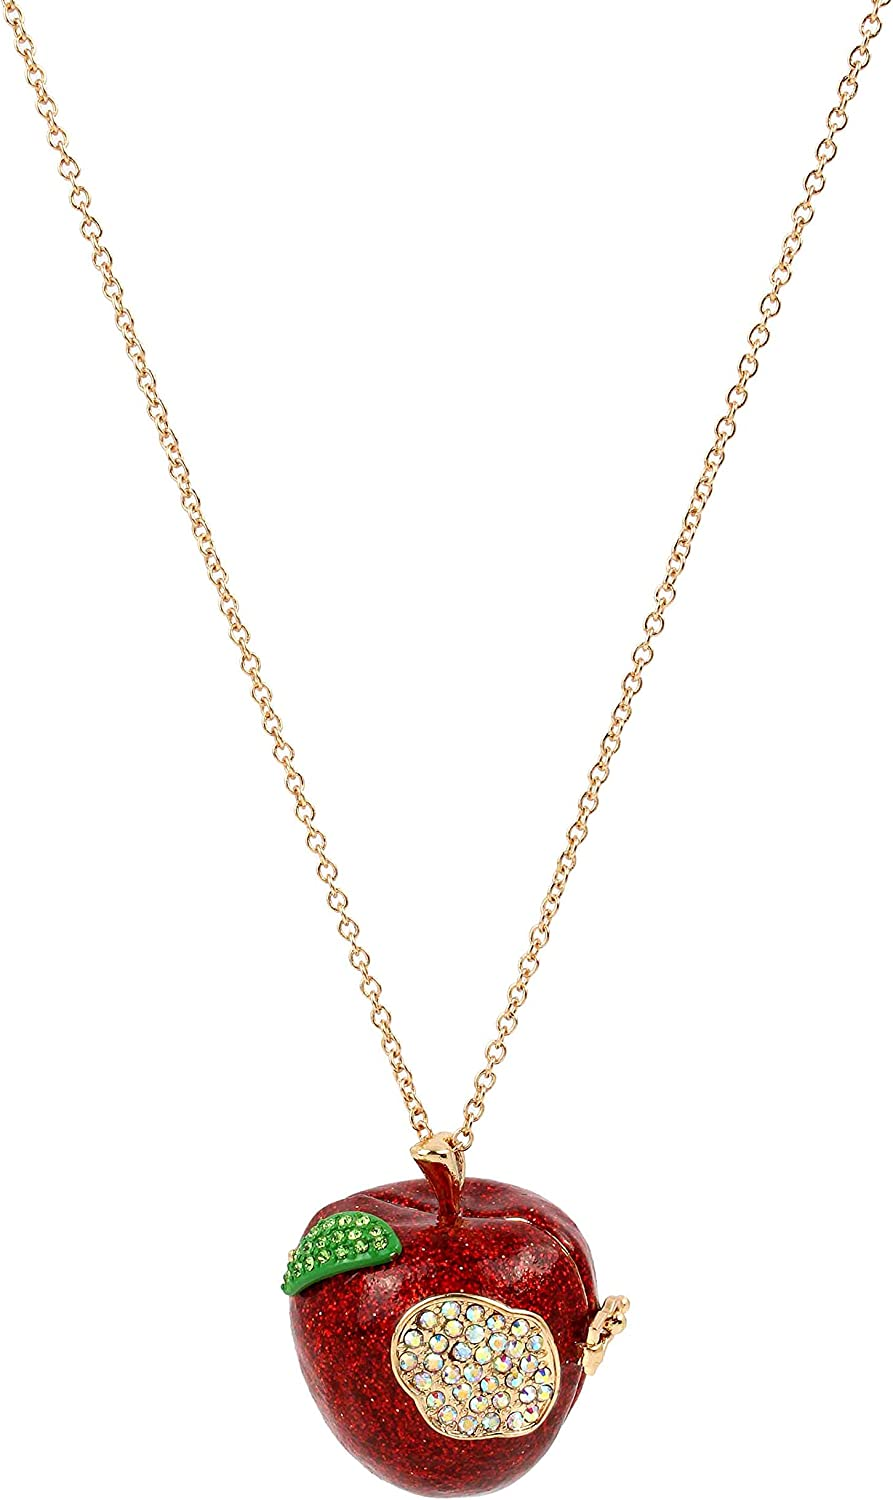 Betsey Johnson Apple Long Pendant Necklace